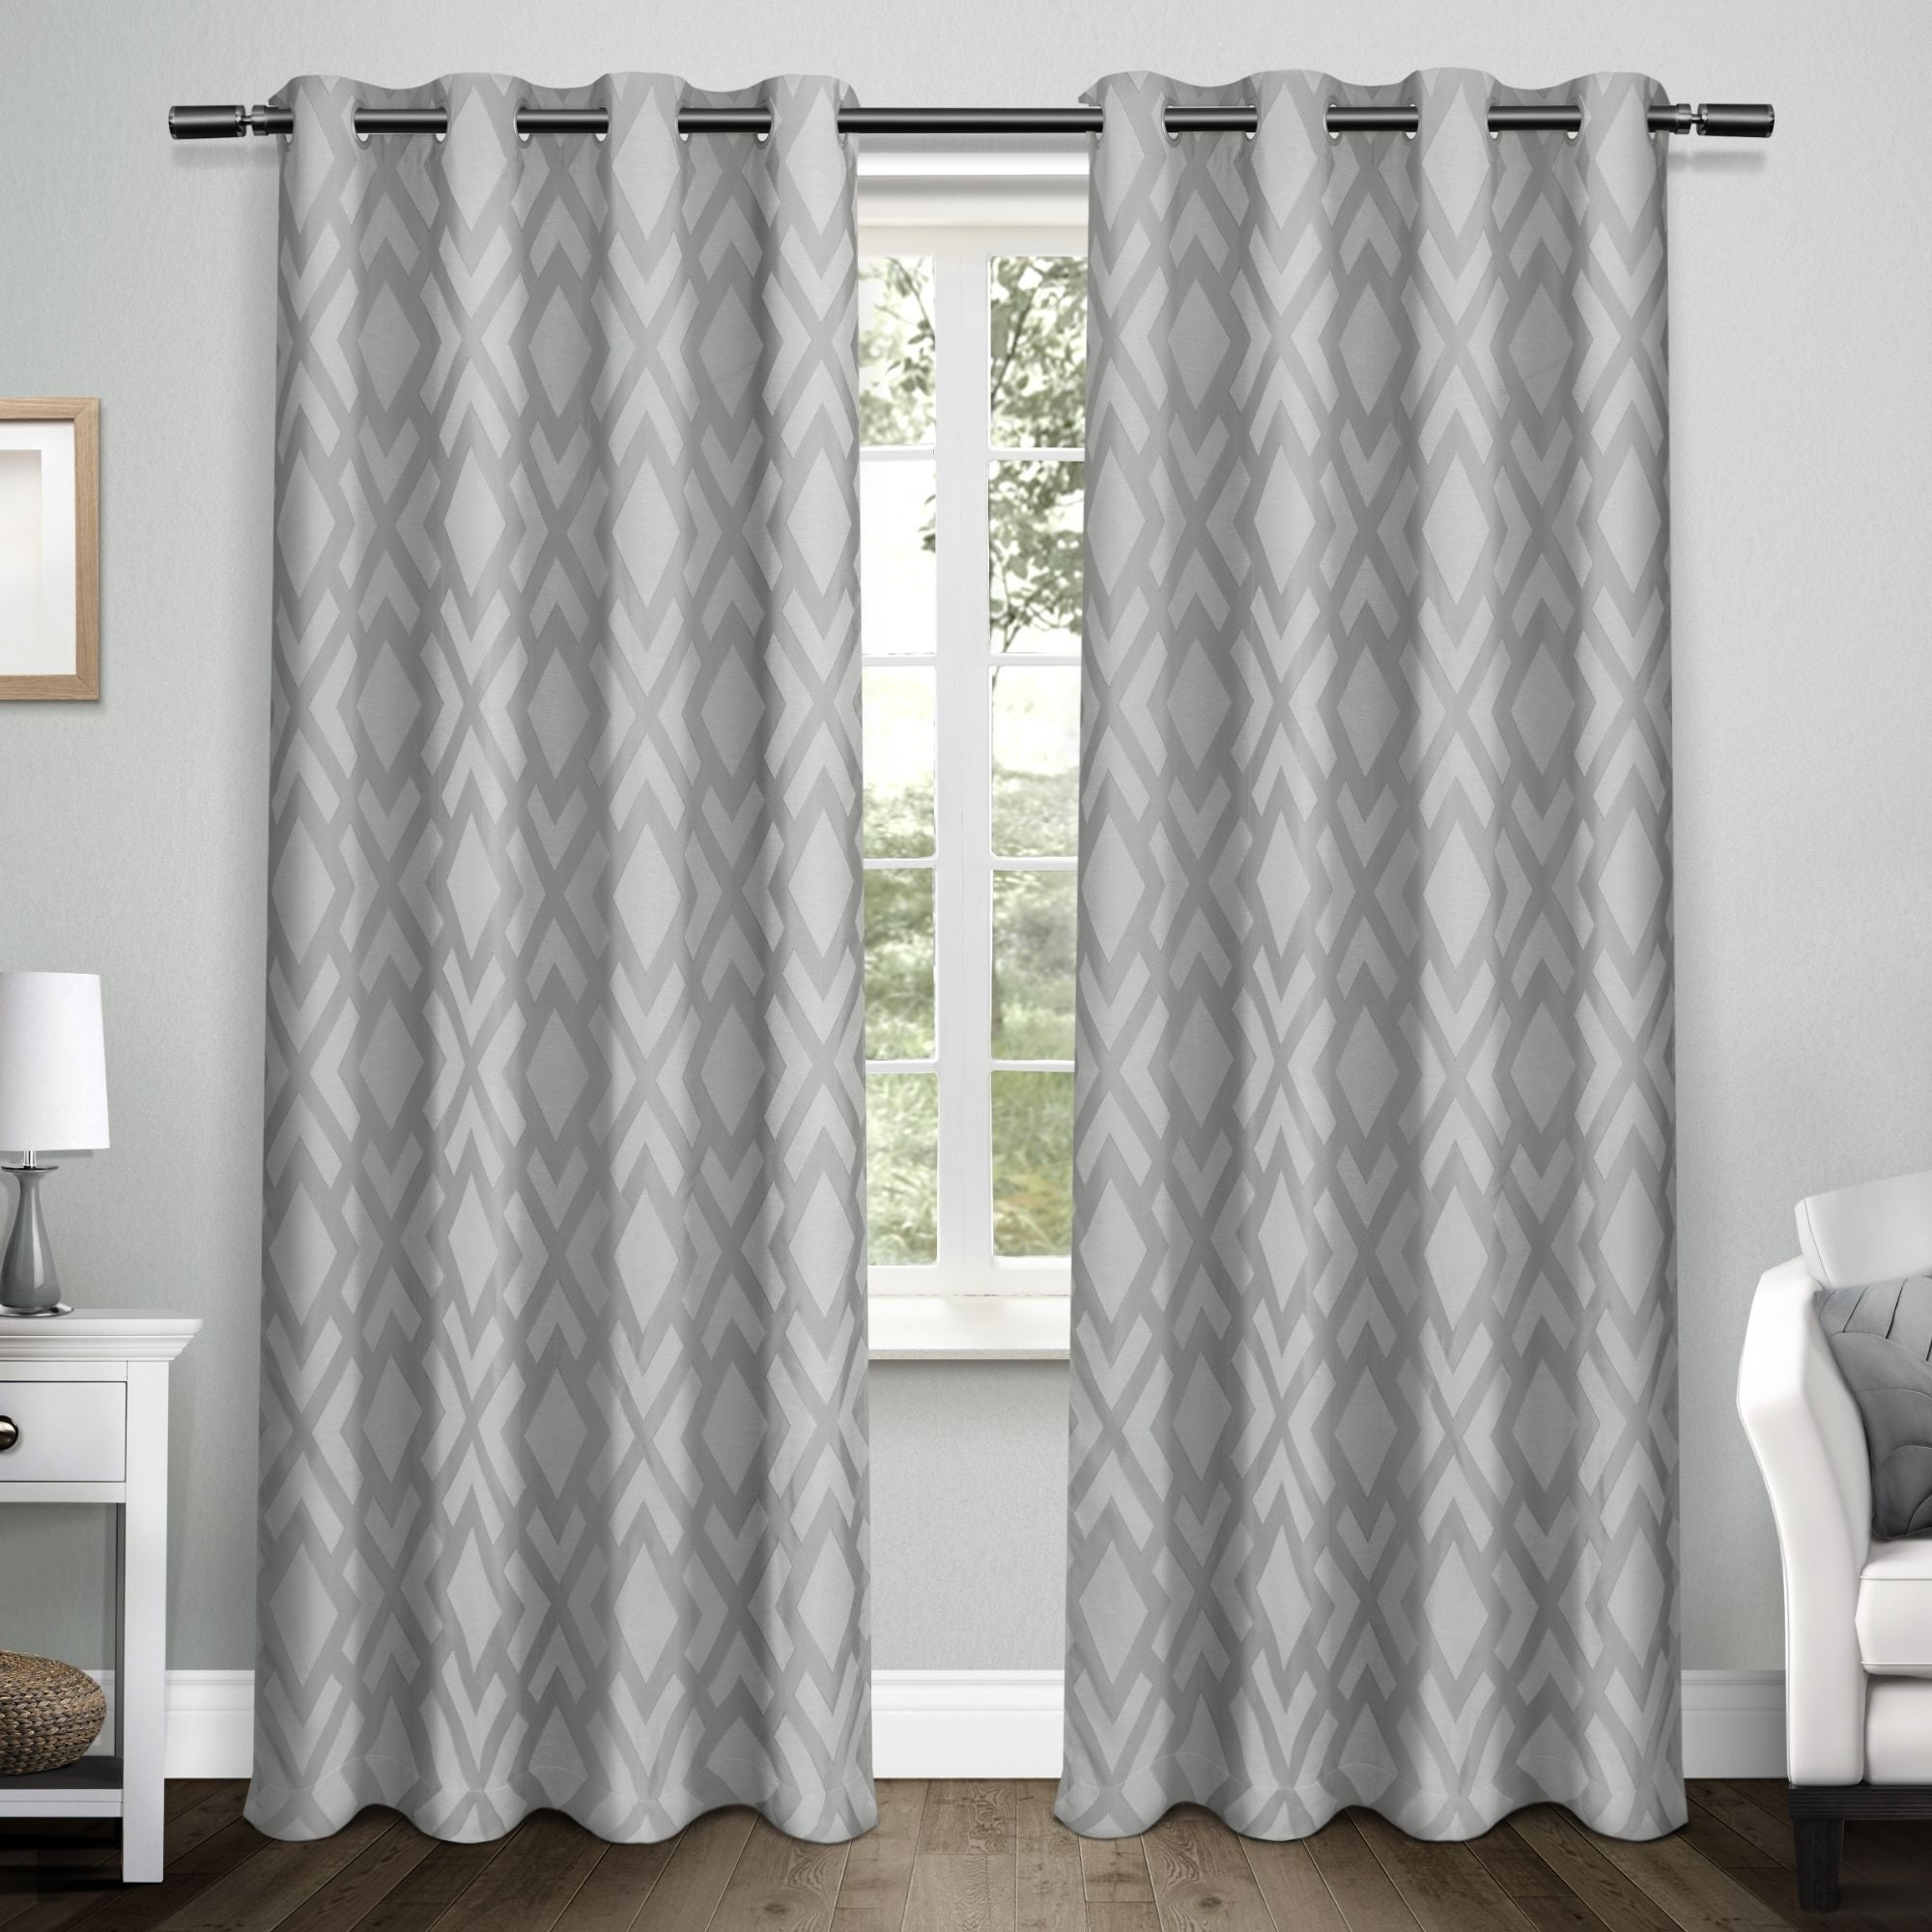 Latest Ati Home Easton Thermal Woven Blackout Grommet Top Curtain Panel Pair In Woven Blackout Grommet Top Curtain Panel Pairs (Gallery 3 of 20)